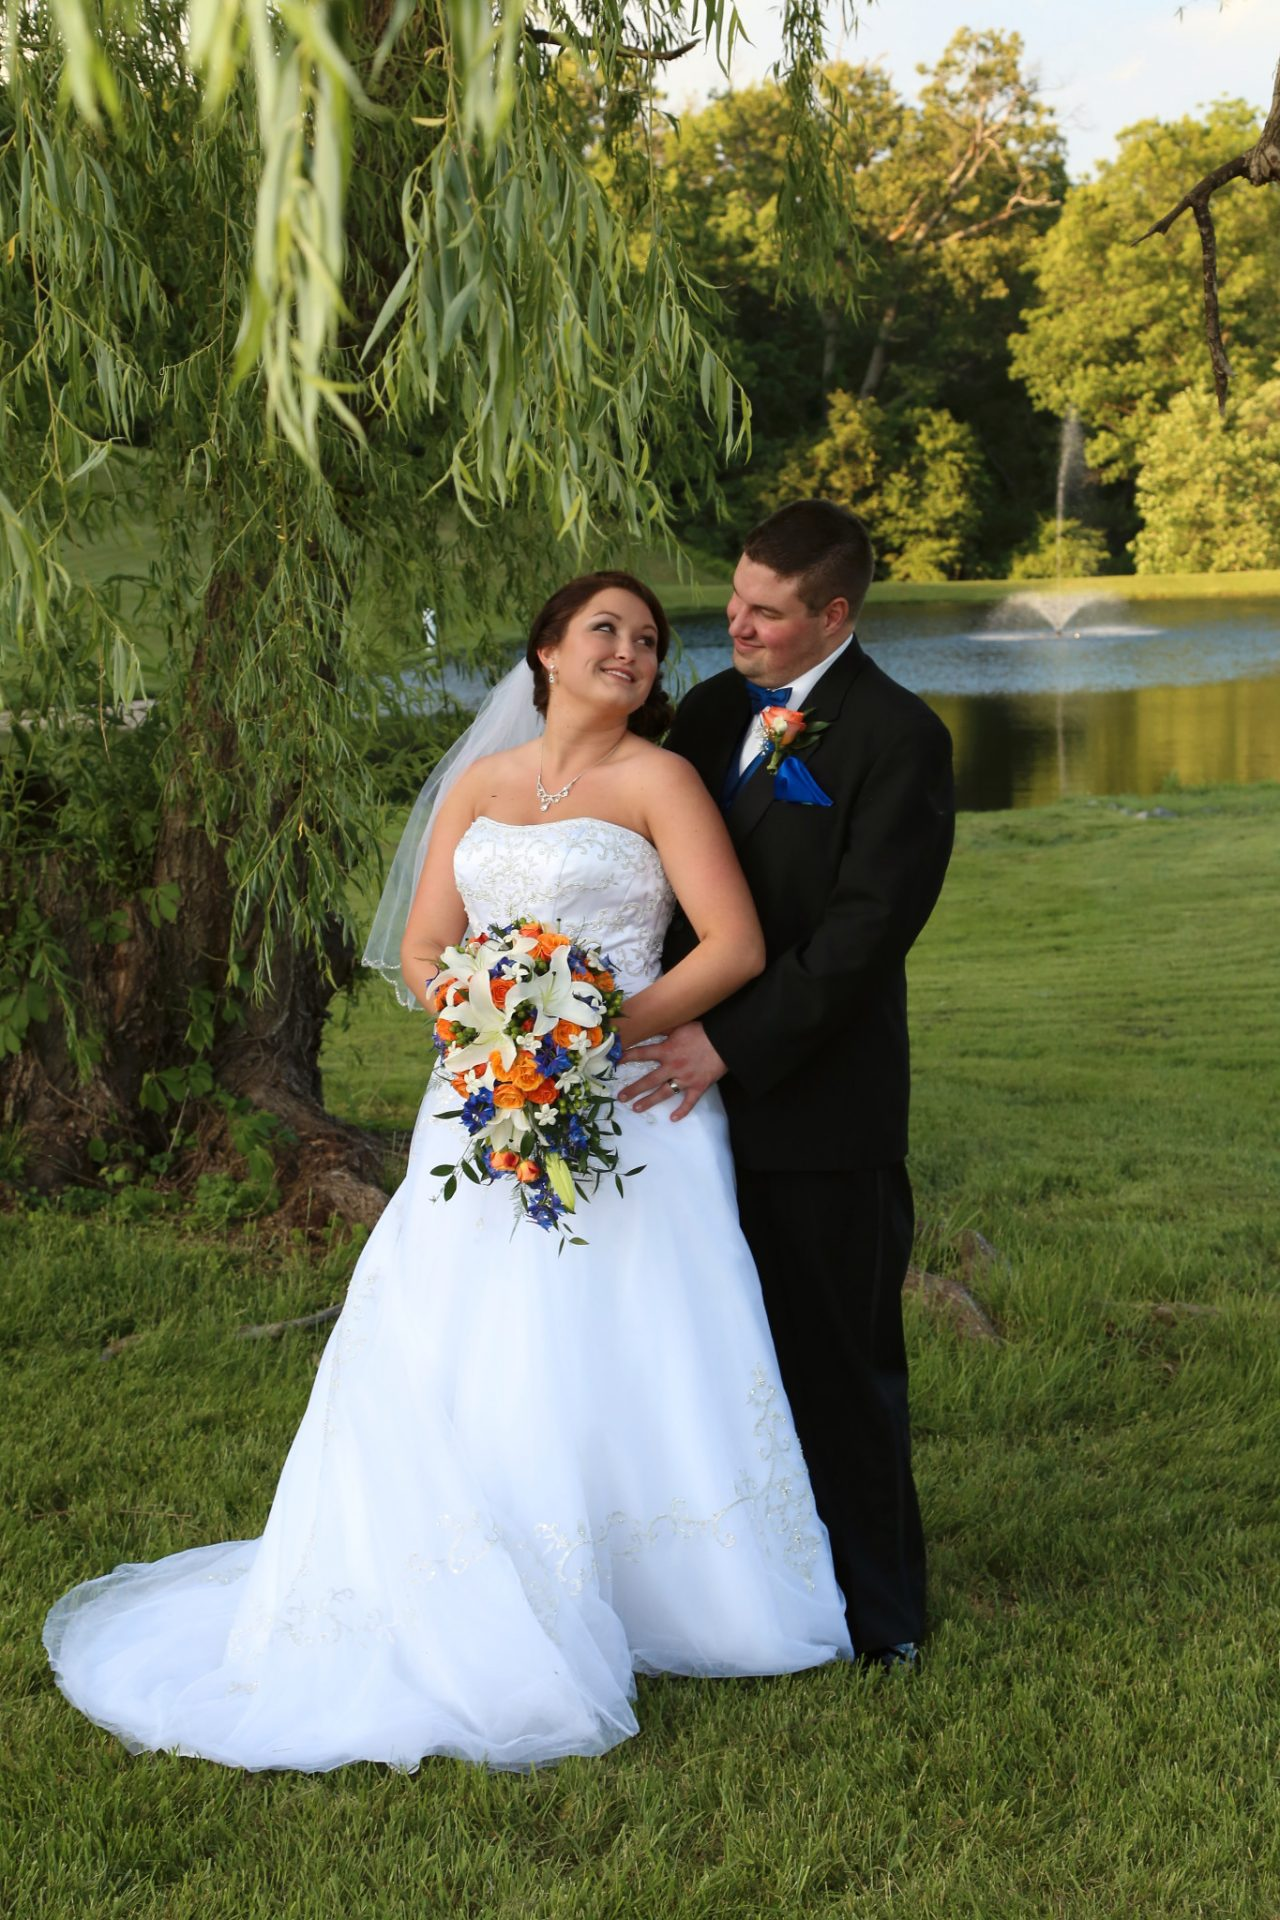 bride and broom pose in front of the old willow tree at morningside inn